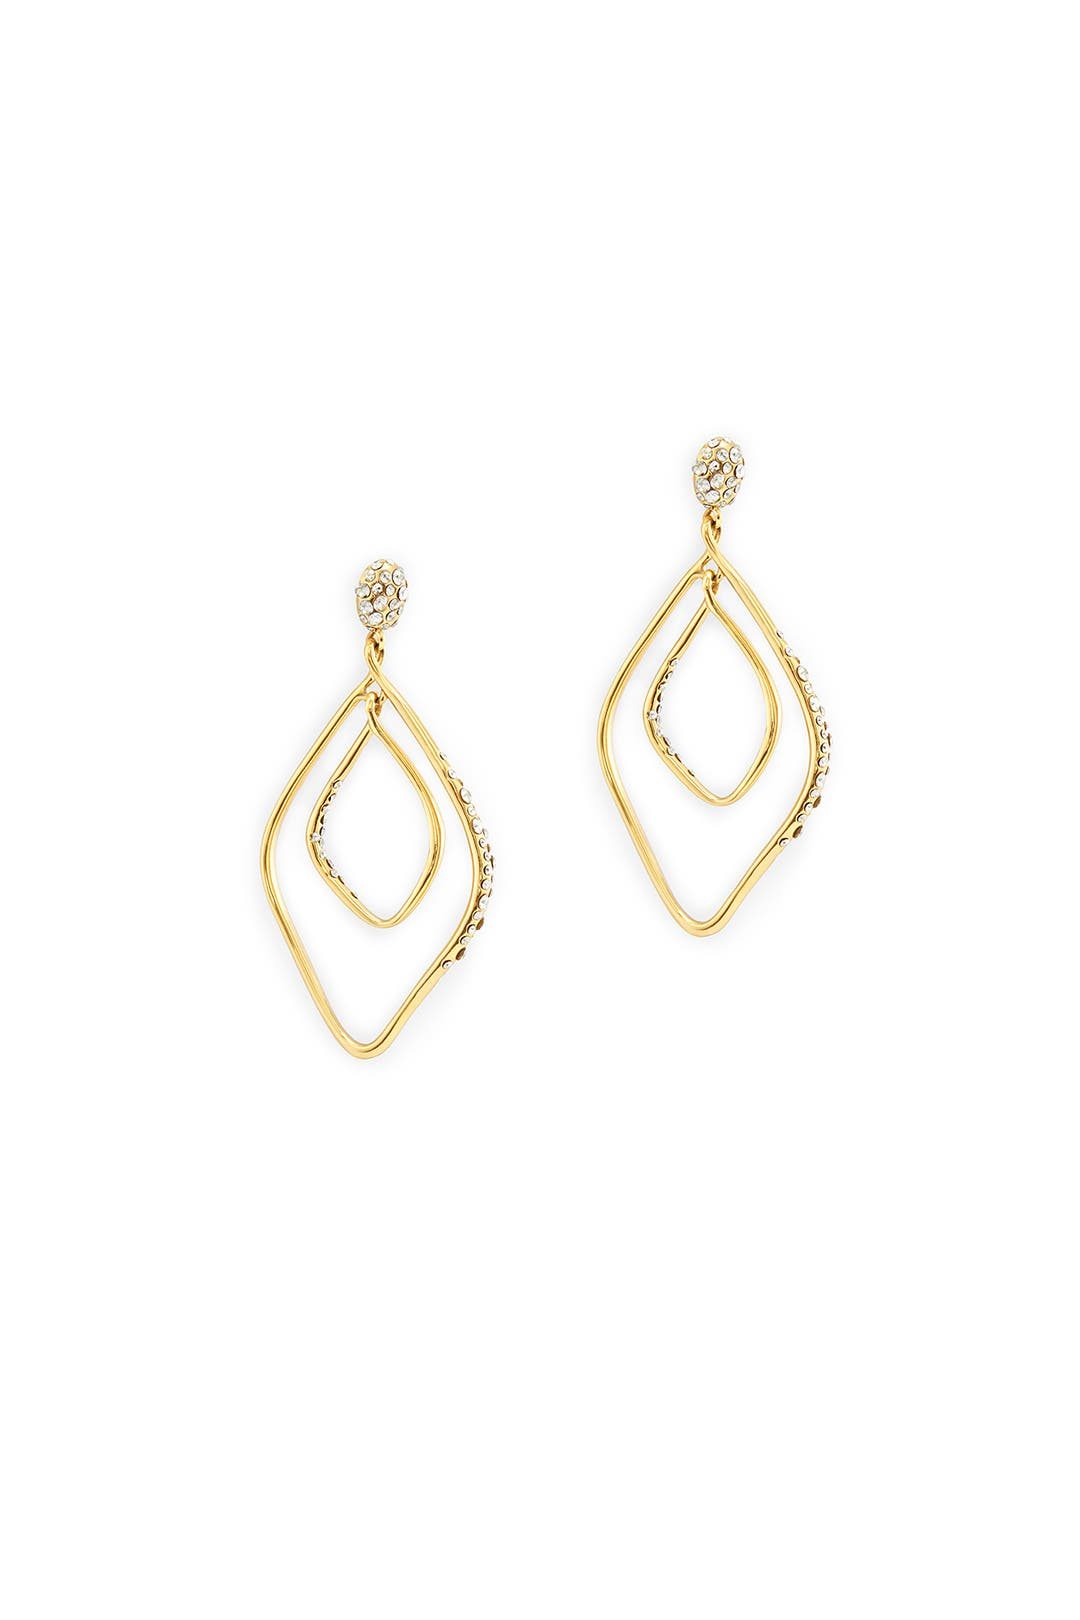 Seeing Double Earrings by Alexis Bittar